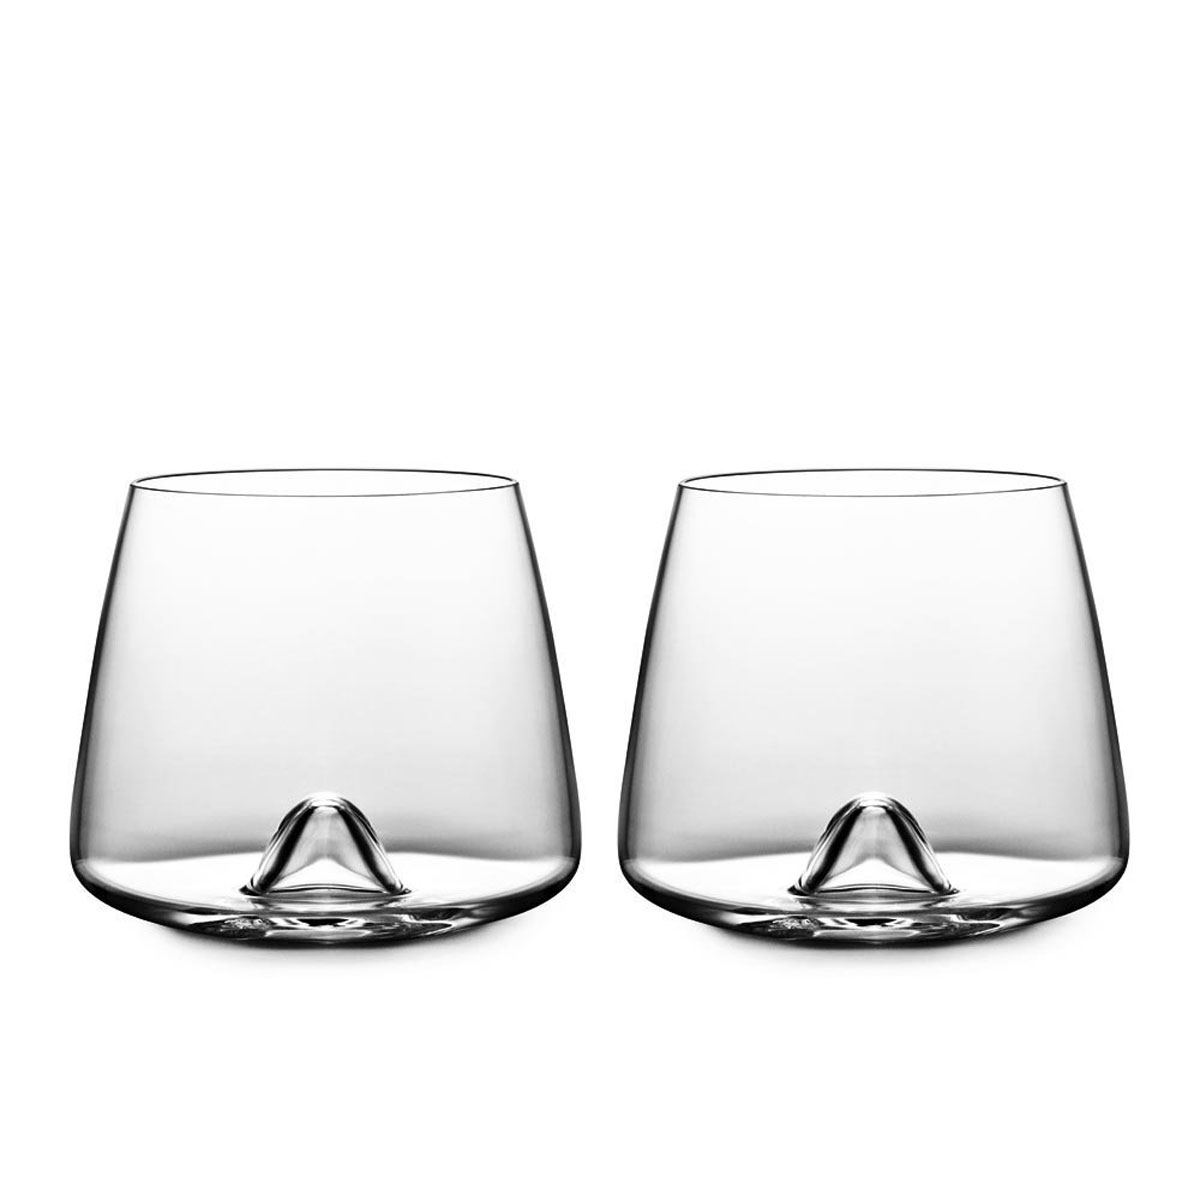 cocktail gl ser normann copenhagen whisky gl ser 2er set skandinavisches design. Black Bedroom Furniture Sets. Home Design Ideas